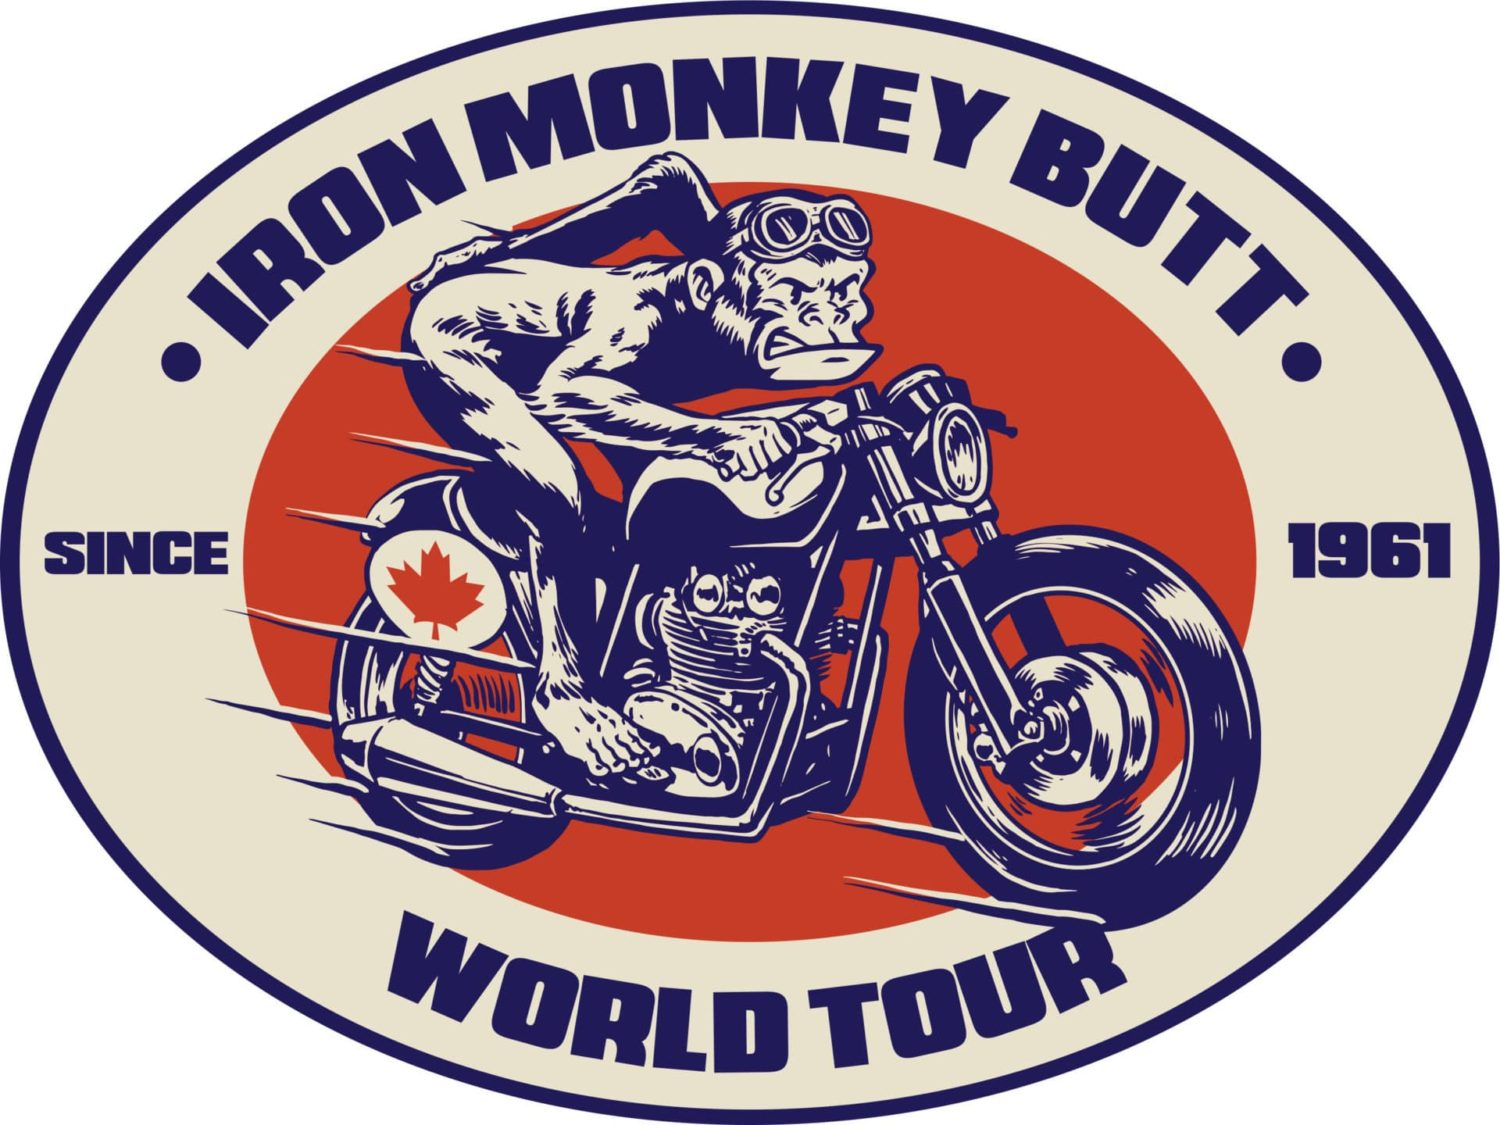 iron monkey butt logo